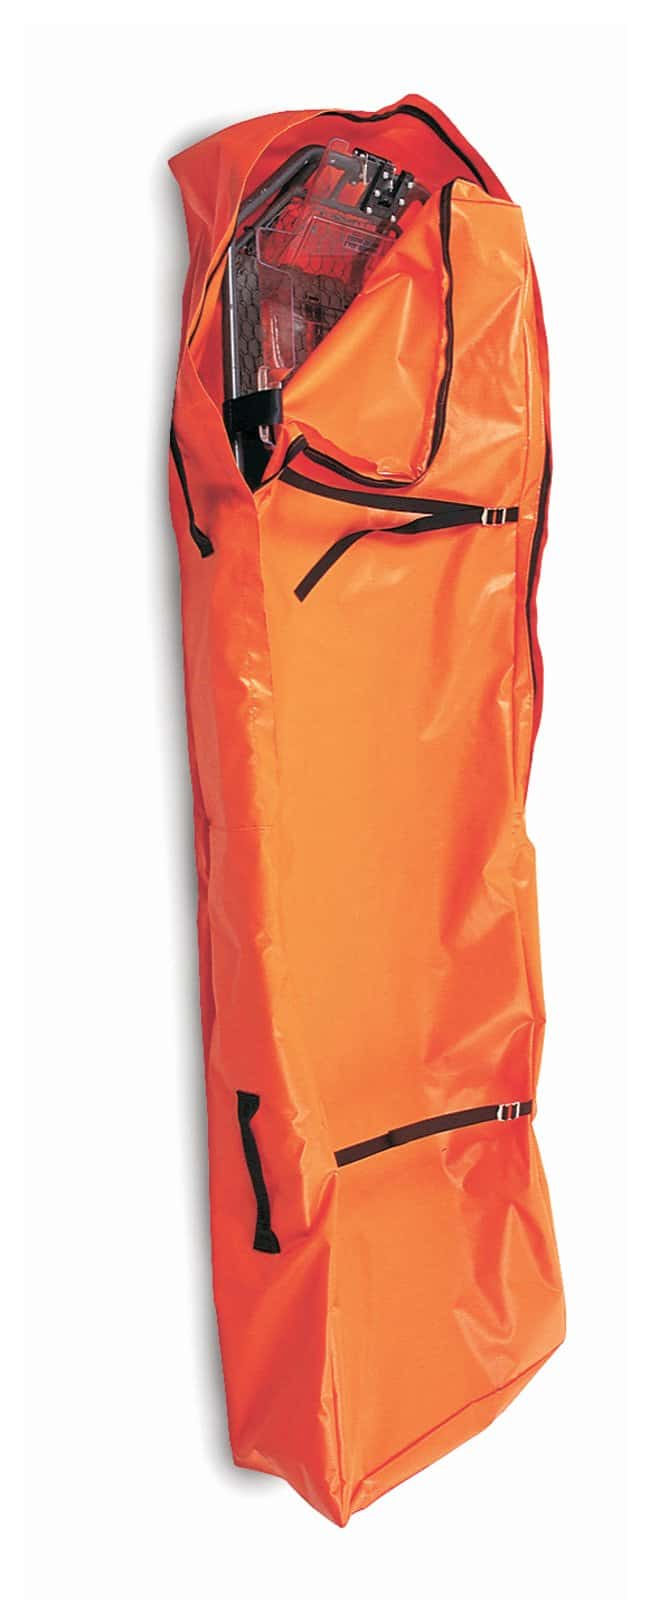 CMC Rescue Litter Covers Dimension: 82 x 22 x 11 in. (208 x 56 x 28cm):First